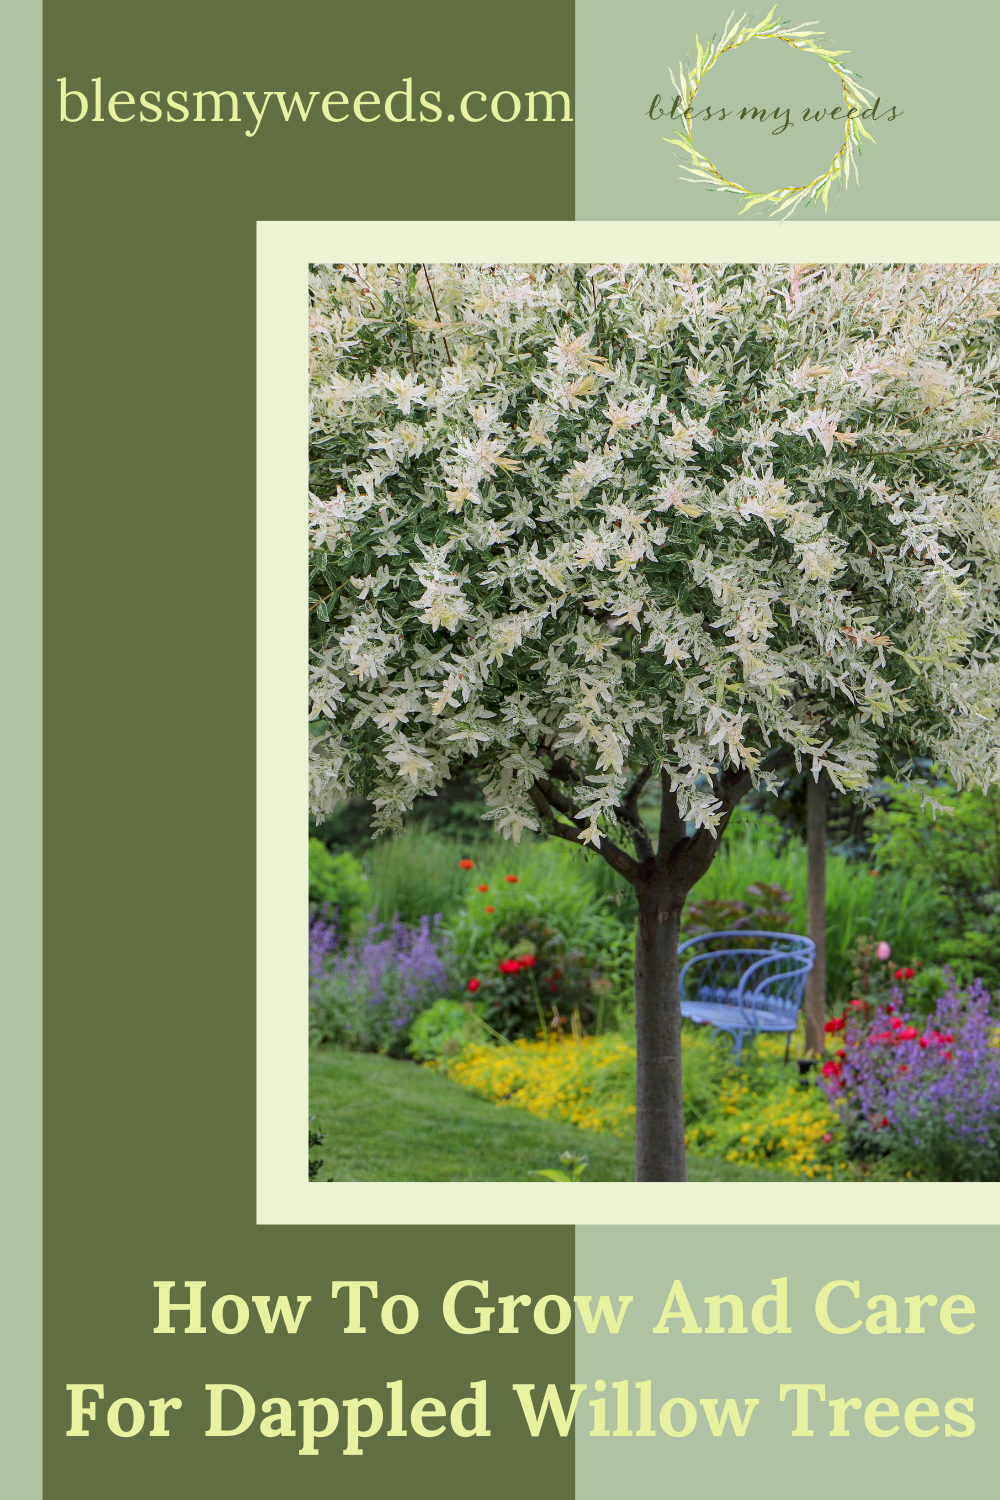 Blessmyweeds.com makes gardening easier than ever with helpful hacks and perfect plant recommendations! Let your hard work fully bloom and master your technique. Find out how you can better care for your dappled willow trees!